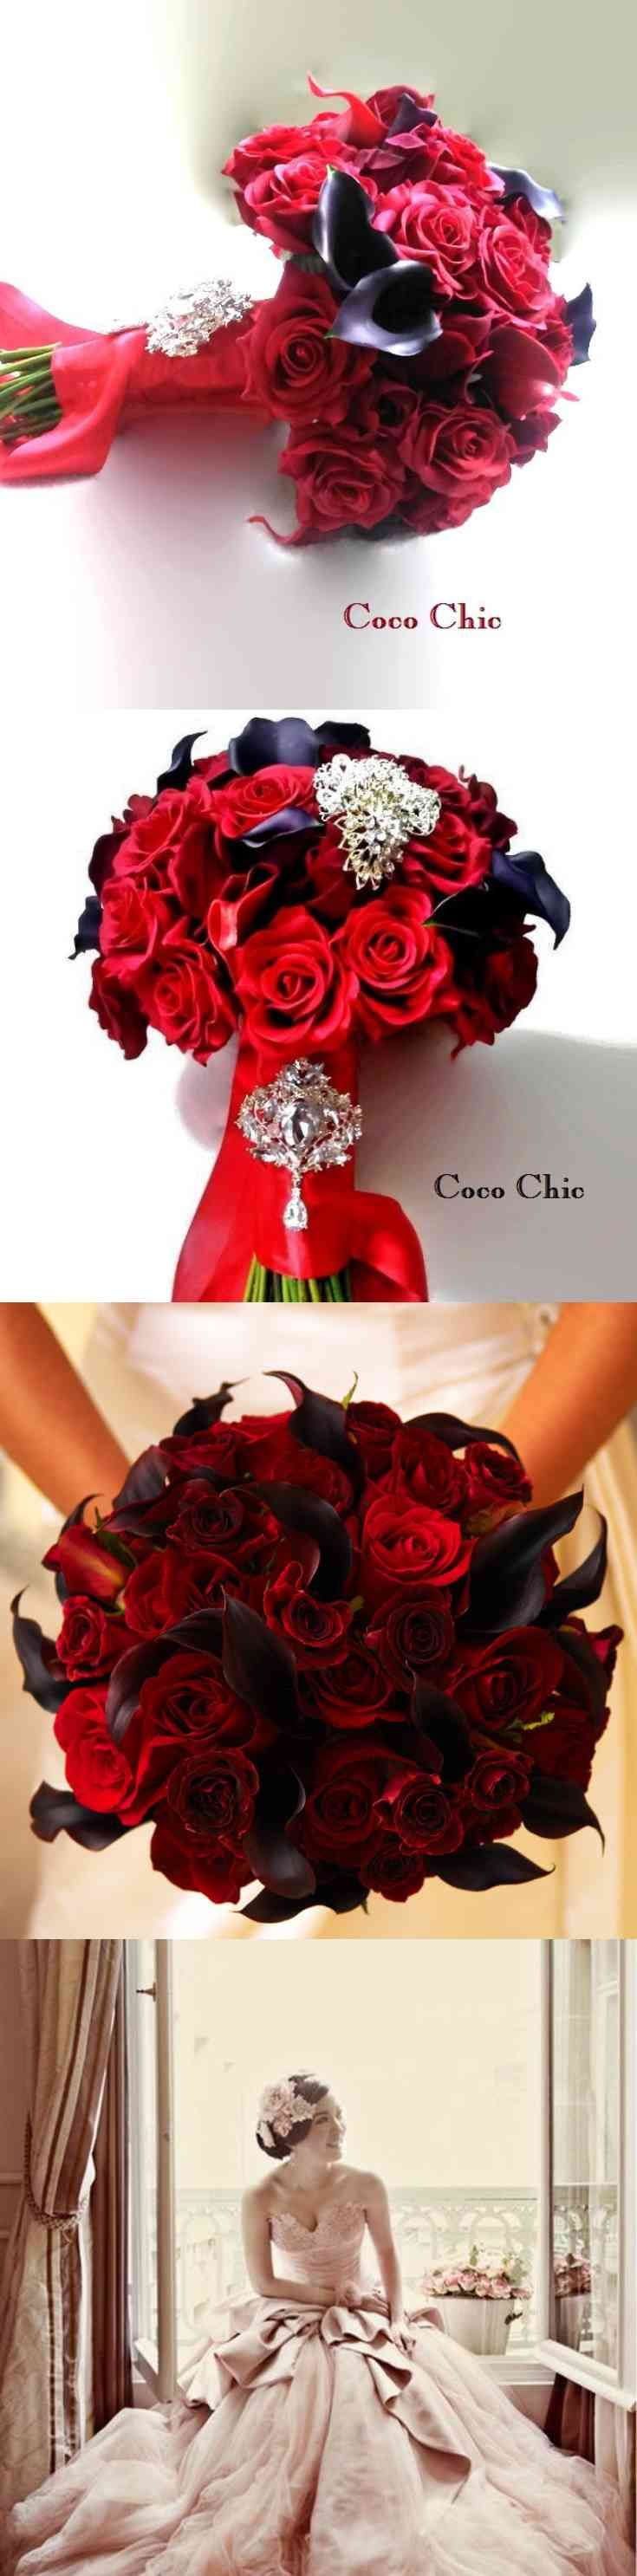 Chic Classic and Red Real Touch Roses with dark Burgundy Real Touch Calla Lily Flower Bridal Bouquets Wedding represents your personality this gorgeous and chic wedding bridal bouquet can be custom made to include , Crystal brooches of your choice attached to a handle,  this is a custom hand made bouquet for chic bride to be, 1 rose-boutonniere and 2 flower corsages. I (...) (via pushapin.com)